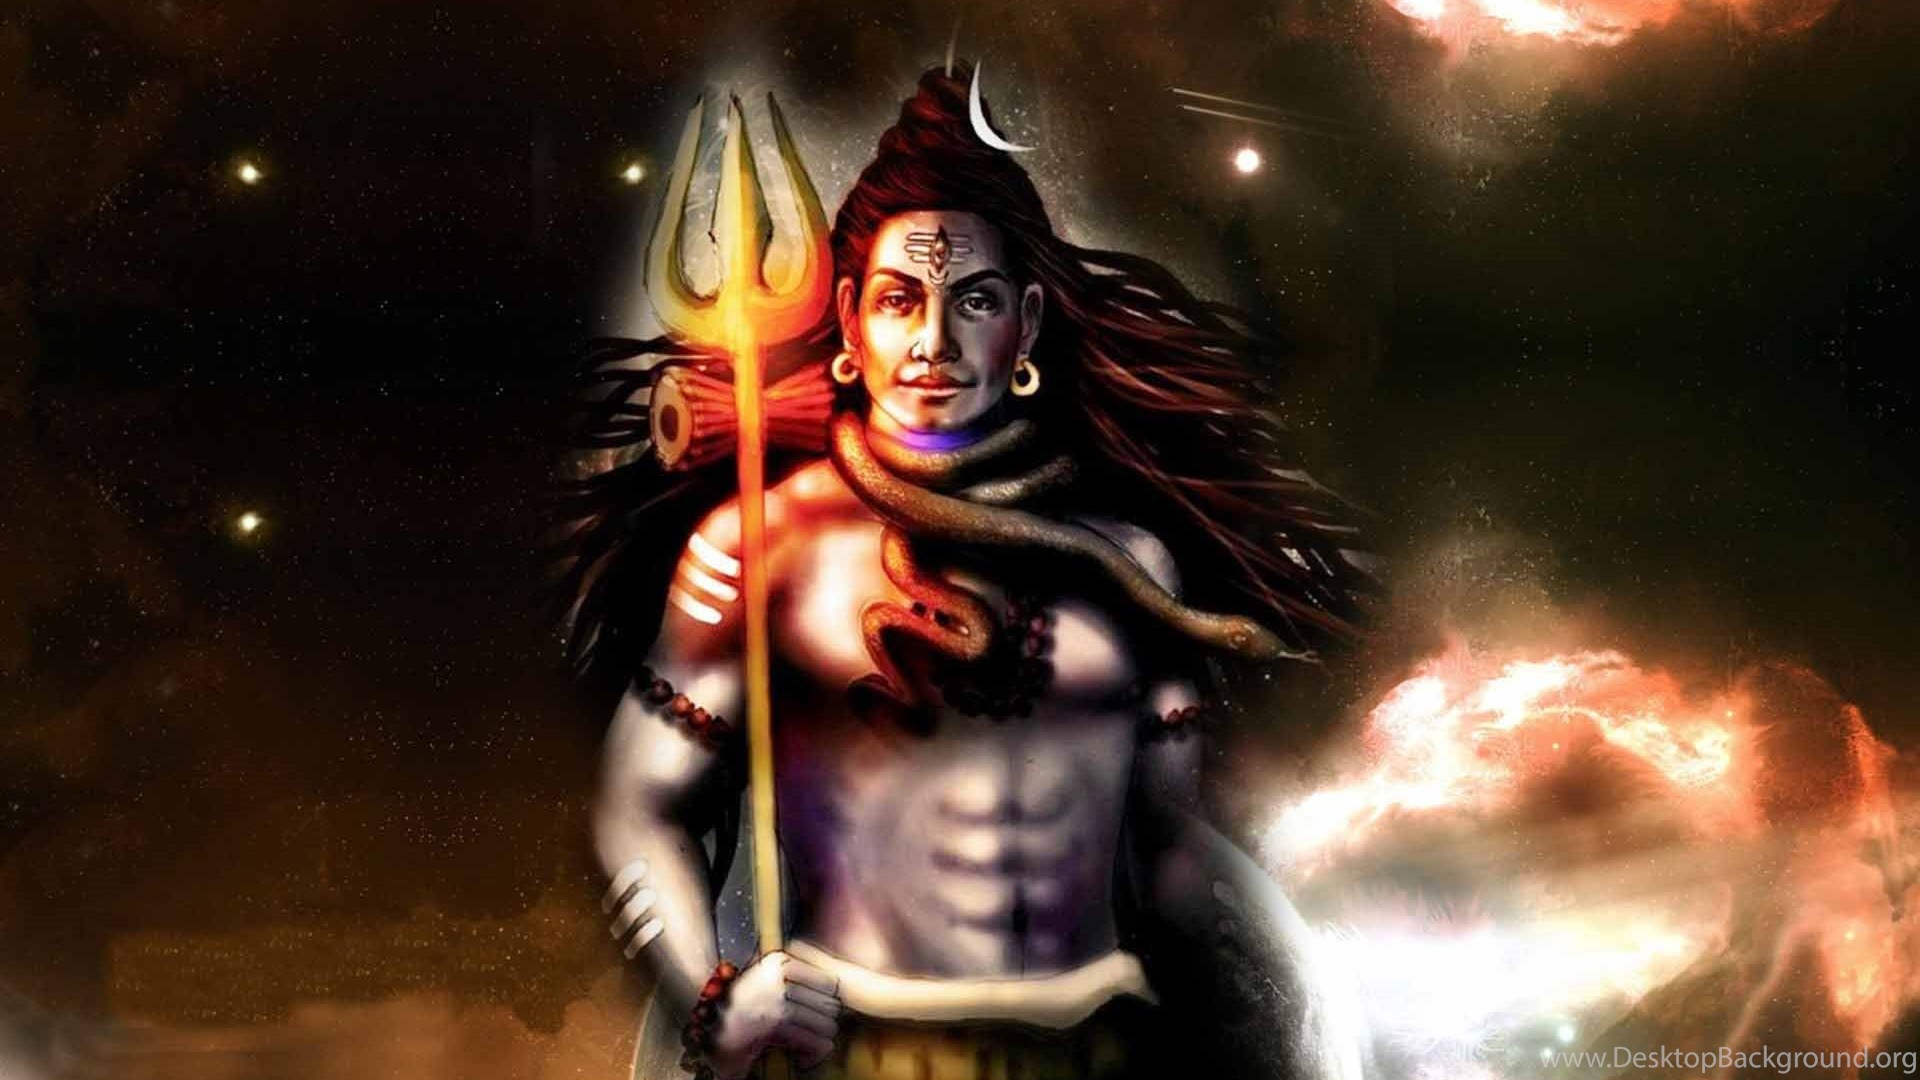 Lord Shiva Animated Hd Wallpapers Desktop Background